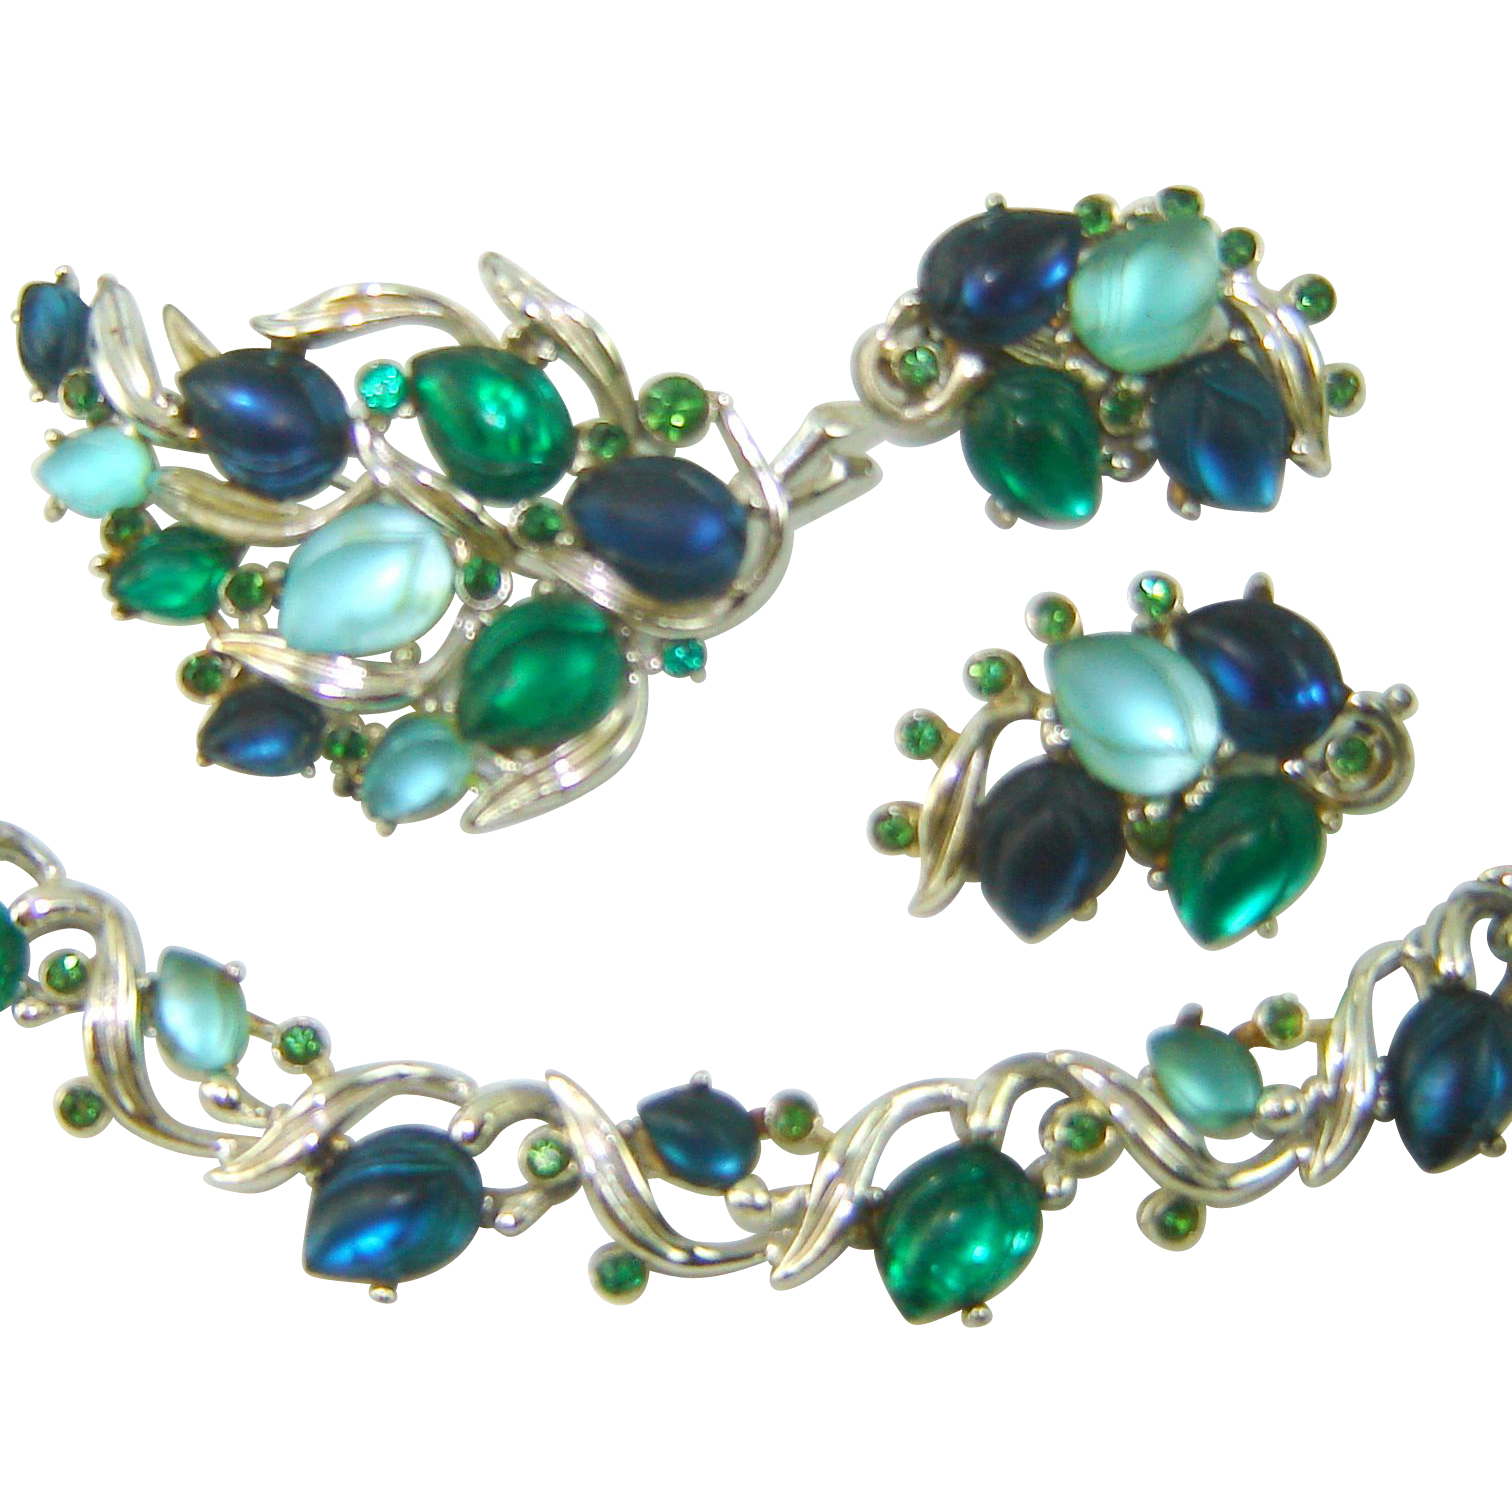 Vintage BSK Necklace Brooch Earrings Fruit Salad GLOWING LEAVES Blue Green Set